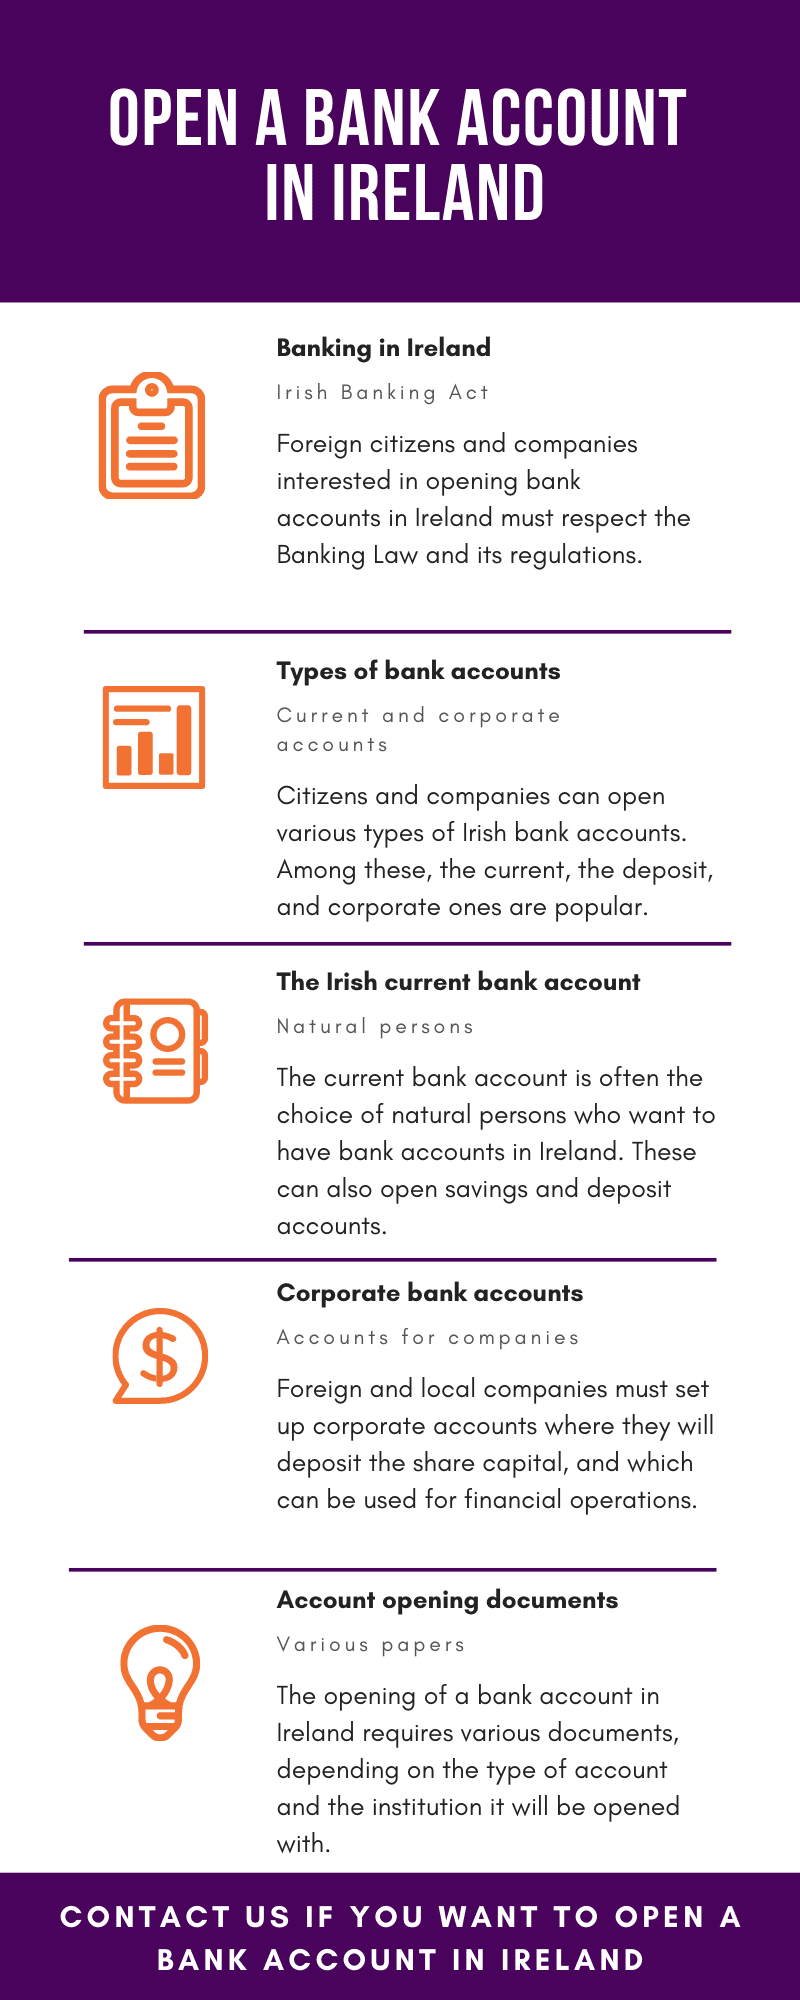 Open a Bank Account in Ireland